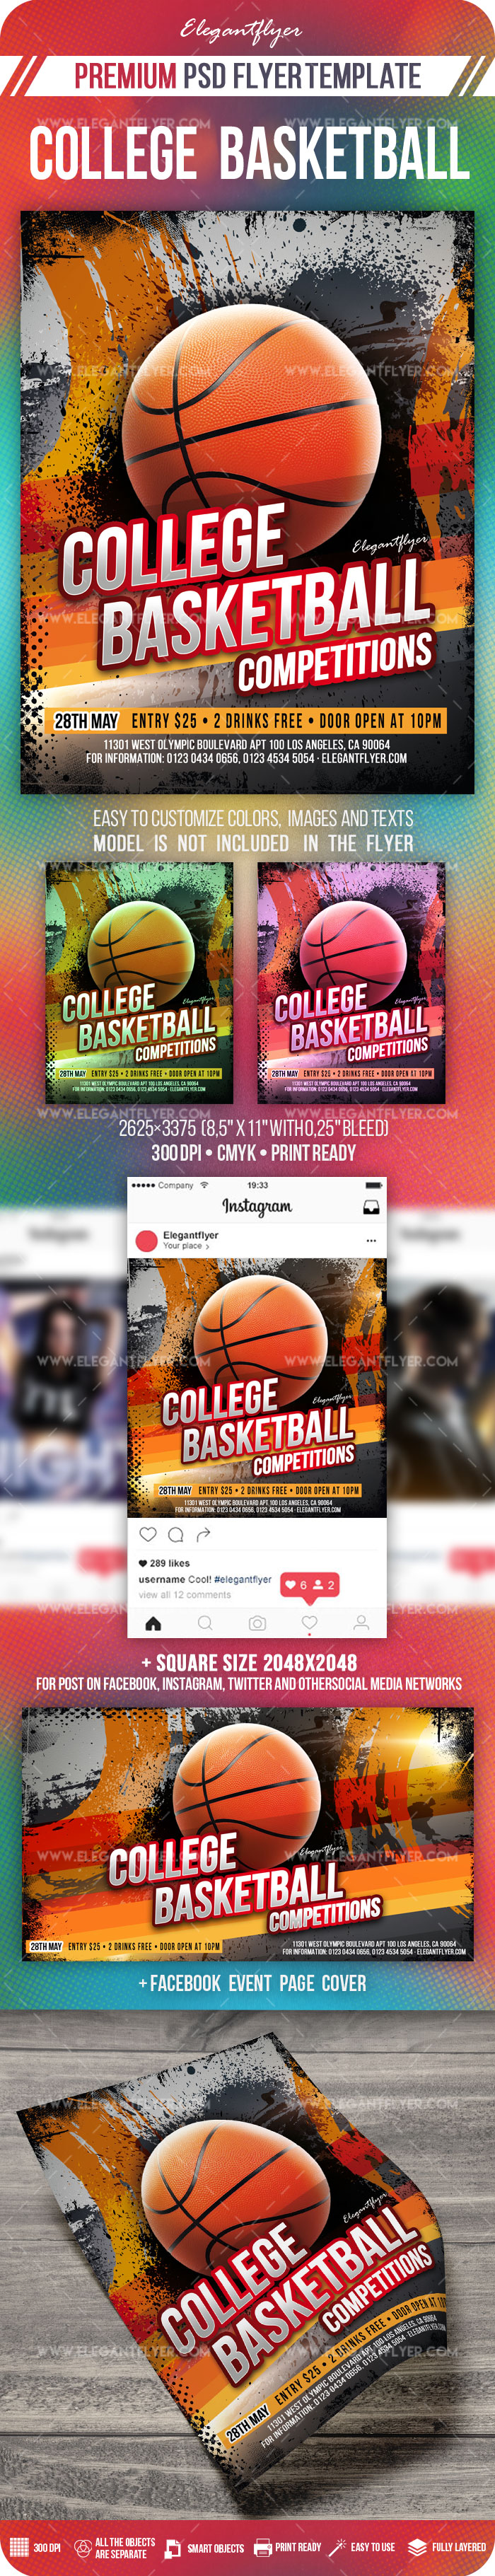 College Basketball Competitions – PSD Flyer Template + Facebook Cover + Instagram Post